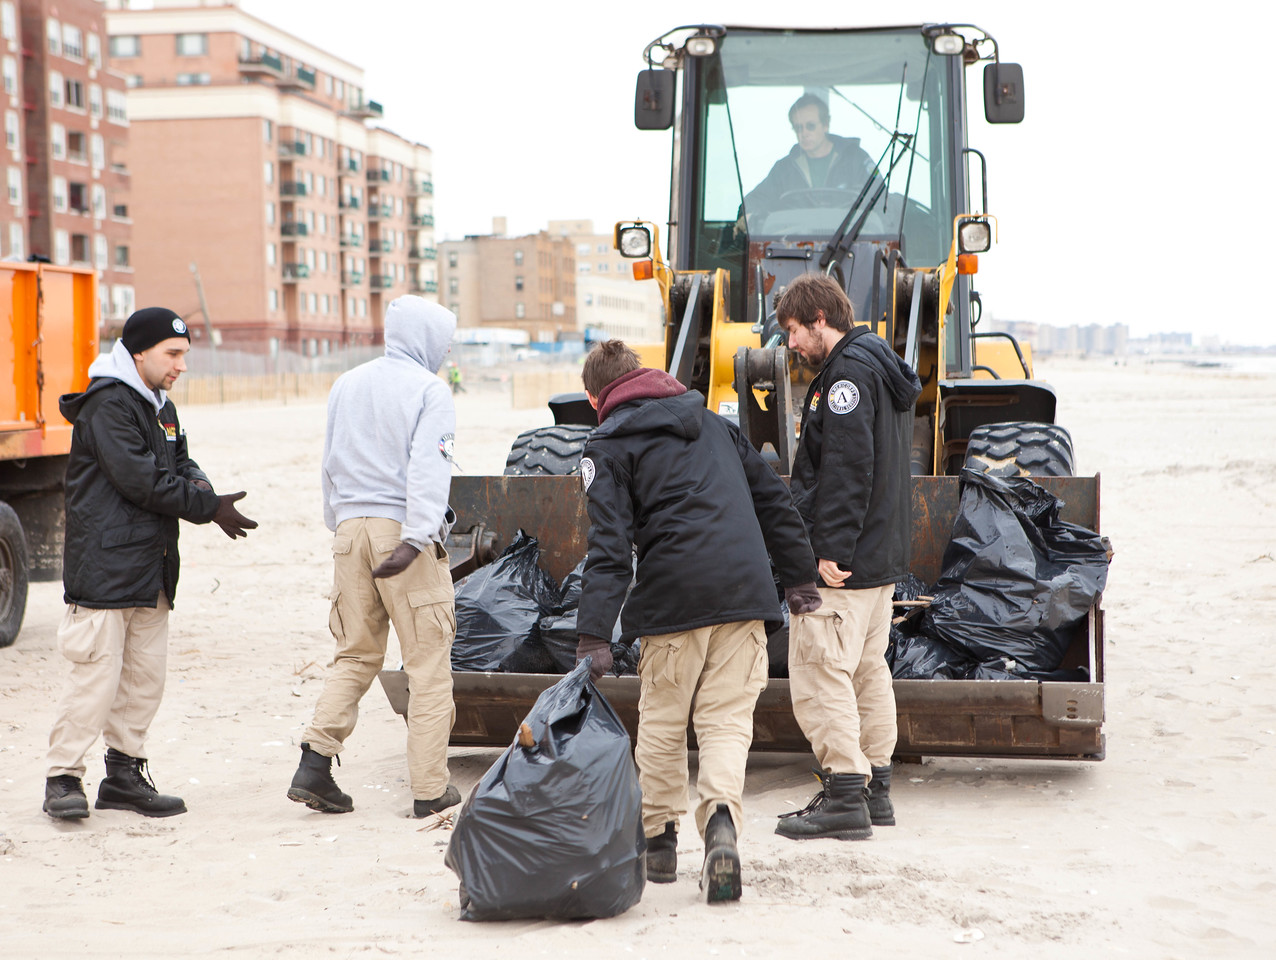 AmeriCorps members help with a cleanup project at New York's Rockaway Beach during a 2013 AmreiCorps Week project on March 16, 2013. (Corporation for National and Community Service Photo)